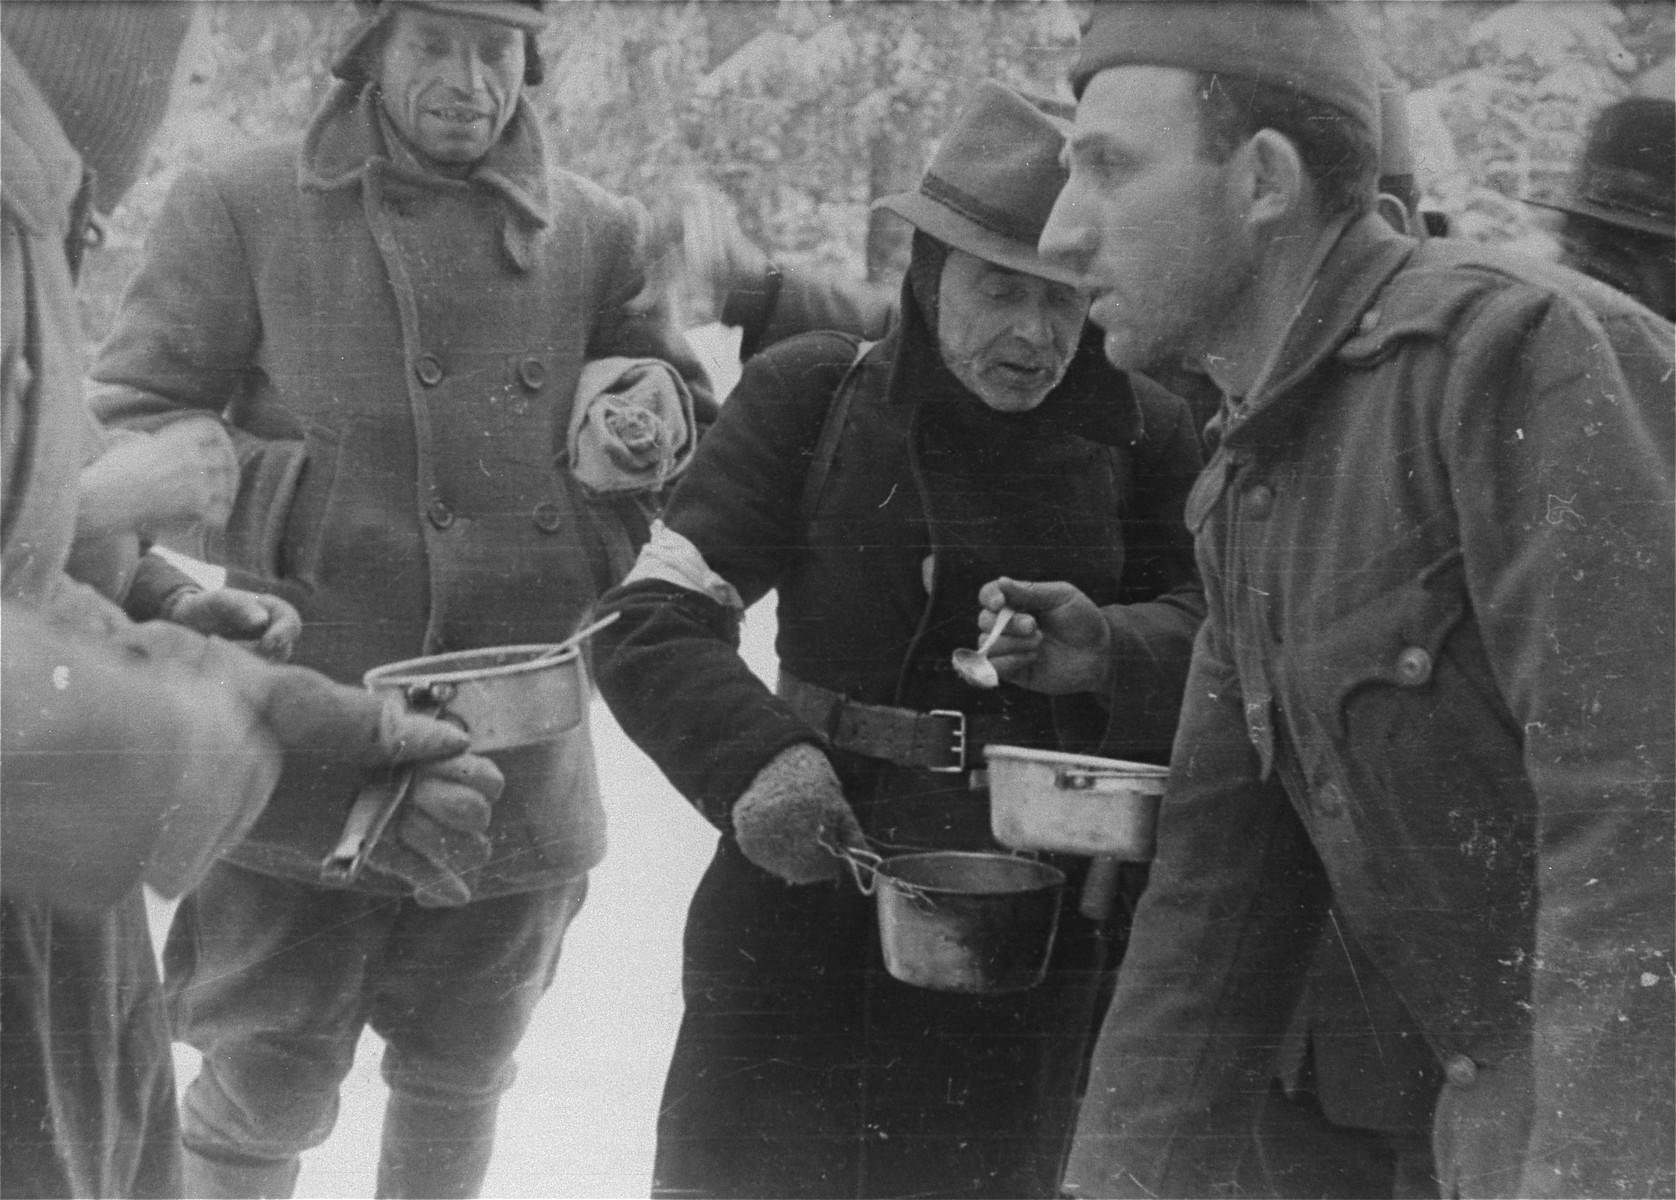 Jewish conscripts in Company 108/57 of the Hungarian Labor Service at mealtime.